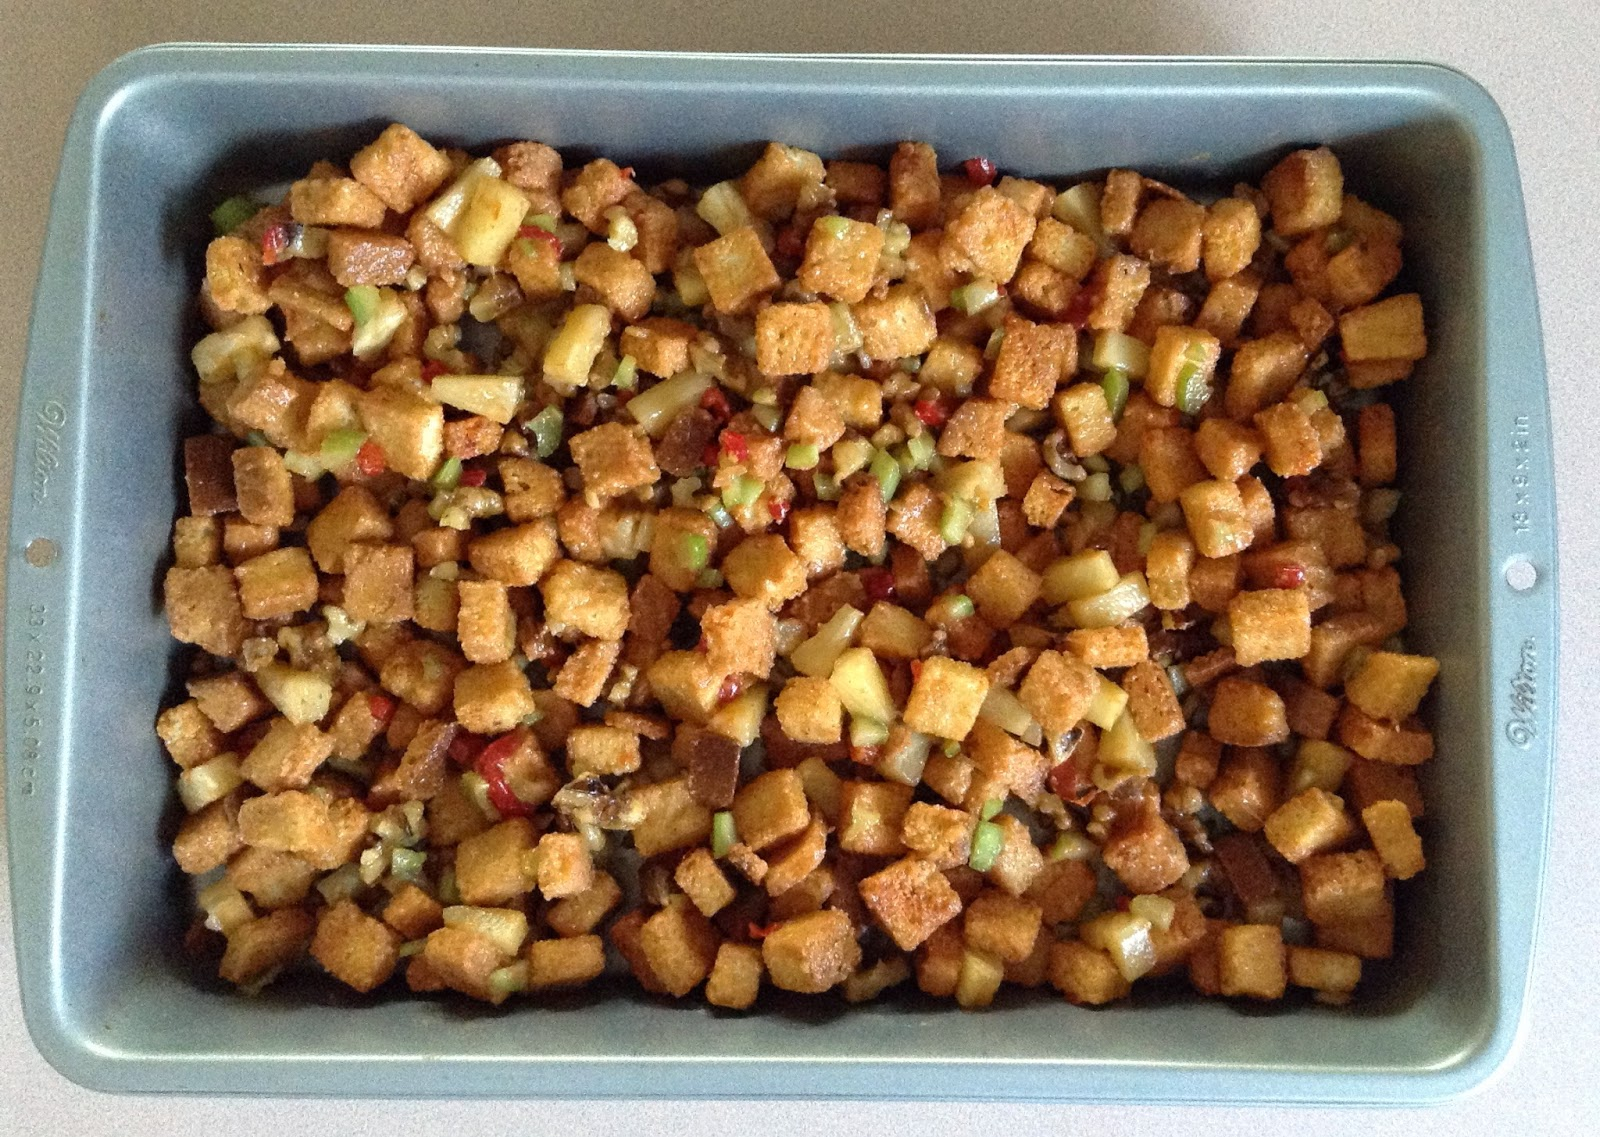 pineapple nut stuffing - baked